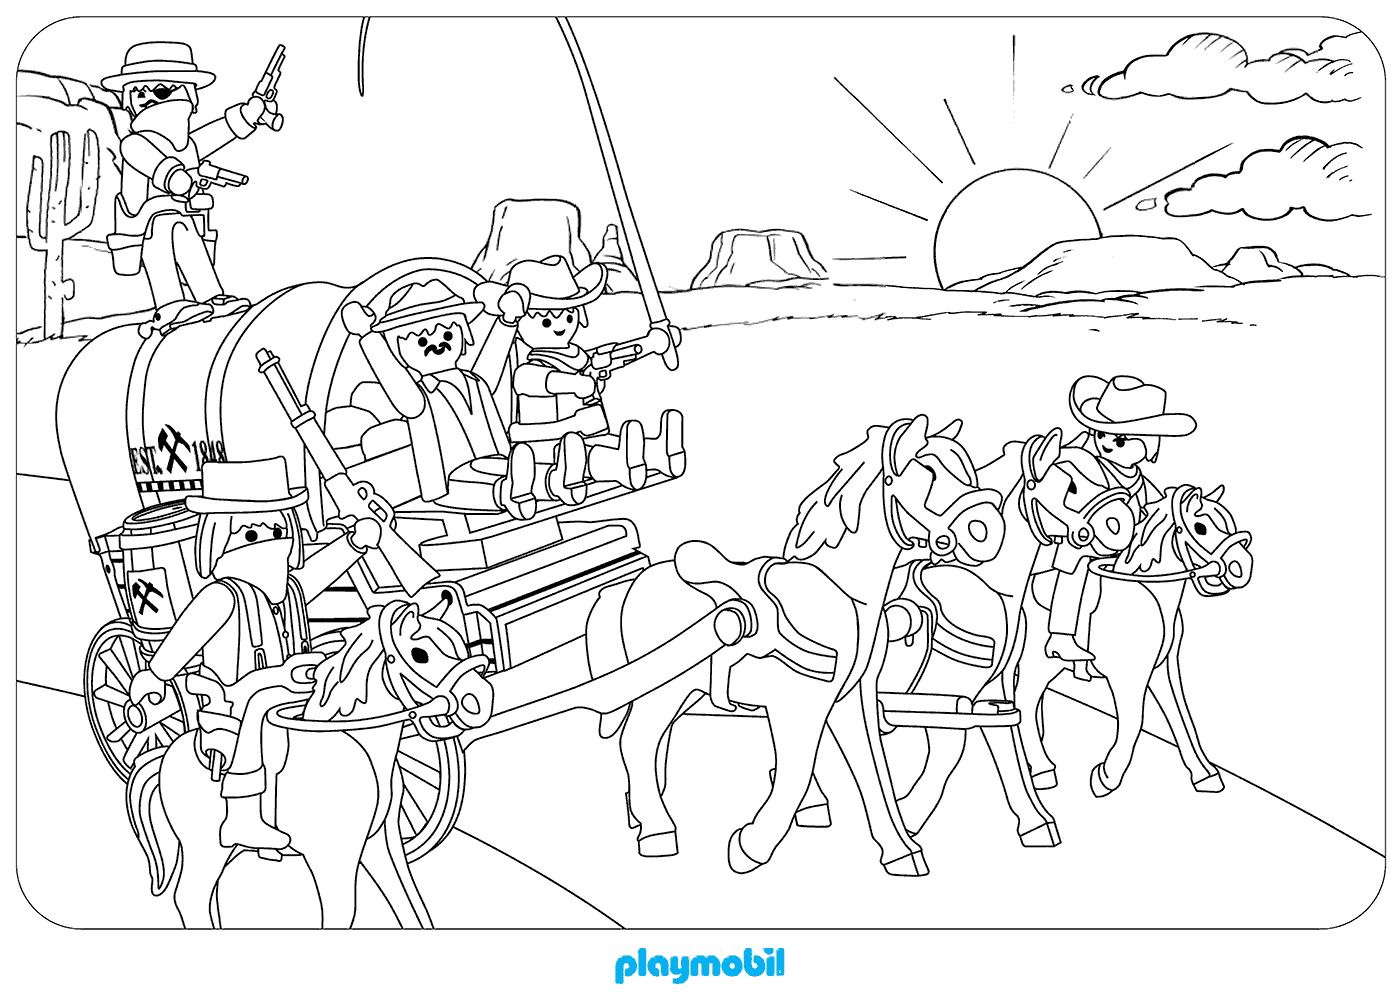 Playmobil Coloring Pages At Getdrawings